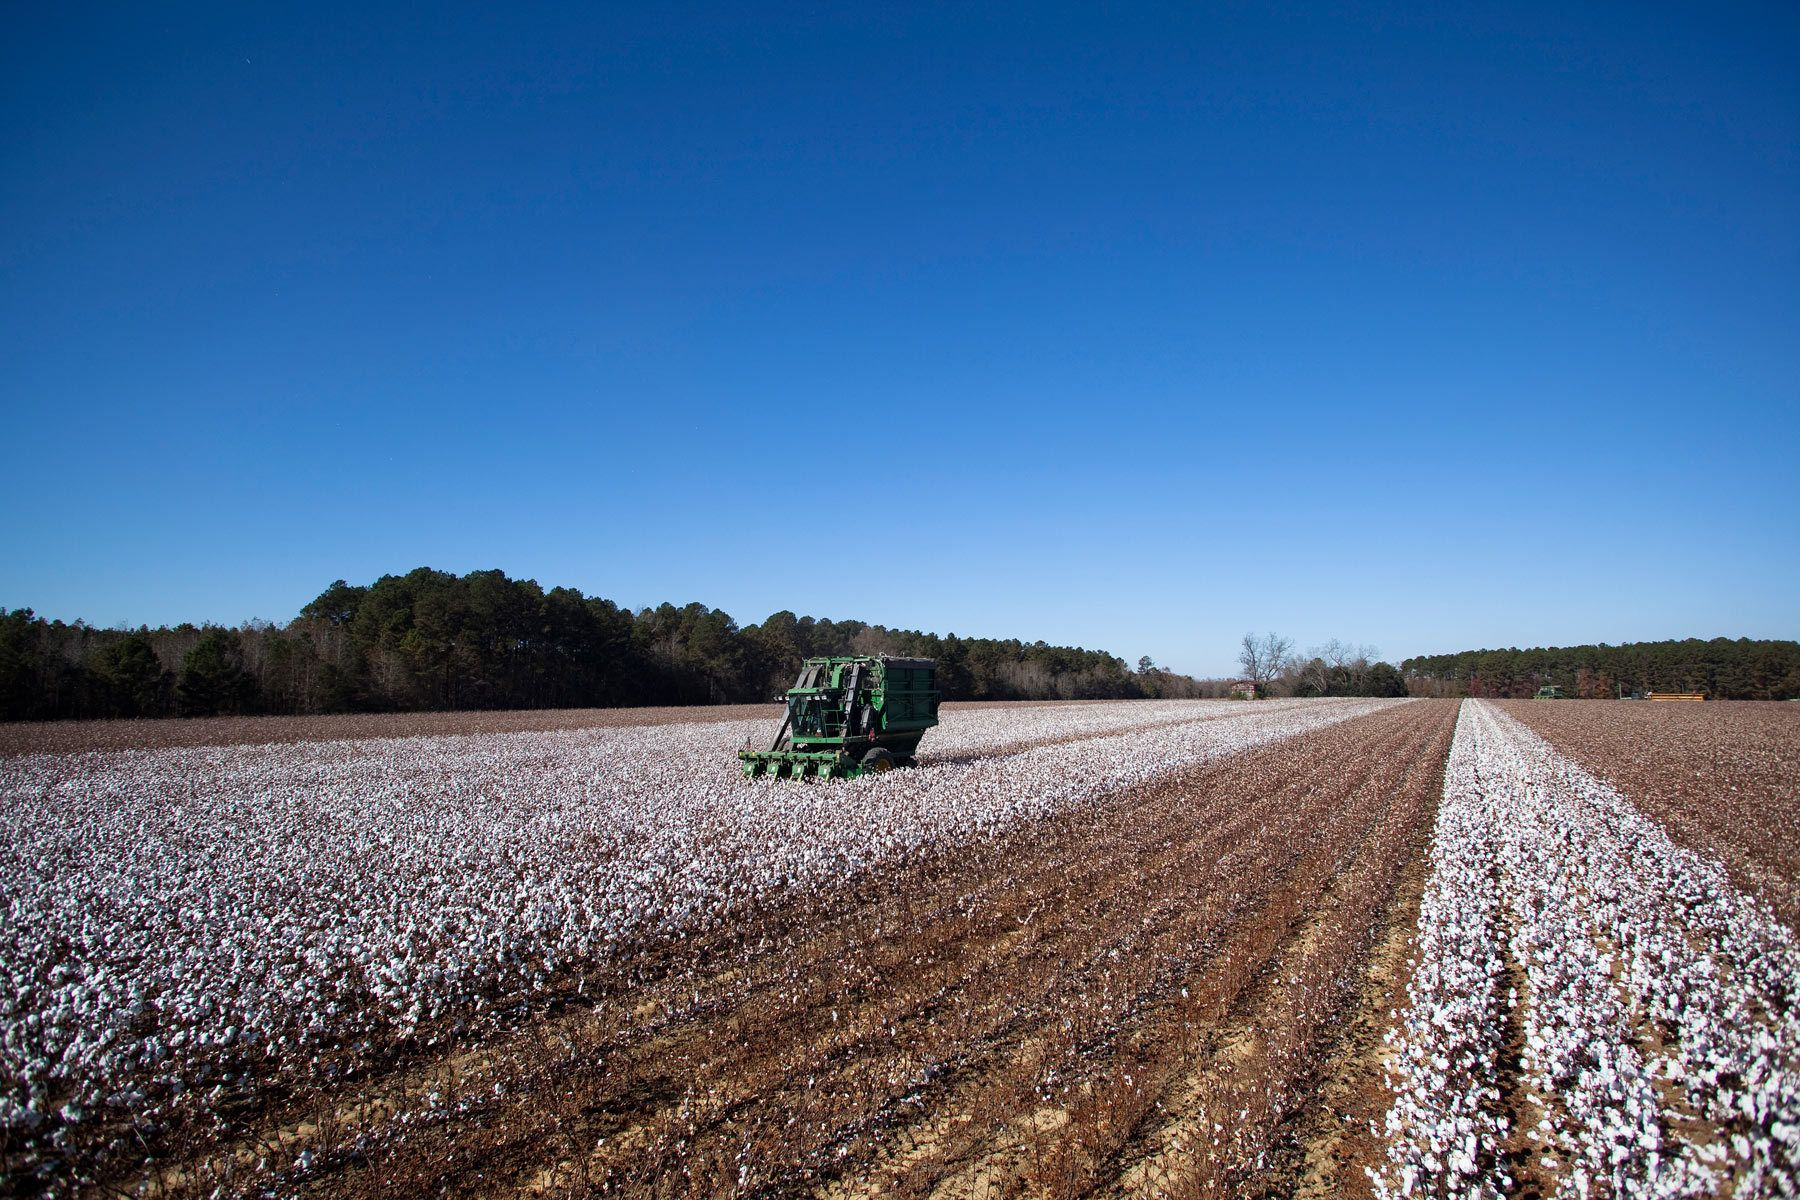 A picker harvests cotton for Baxley & Baxley Farms on a field in Minturn, South Carolina November 24, 2012. The cotton harvest takes place in South Carolina from October through November and is planted and grows along a corridor approximately 30 miles on each side of Interstate I-95. About 80 percent of the cotton harvested by this farm is exported outside the United States. REUTERS/Randall Hill (UNITED STATES)